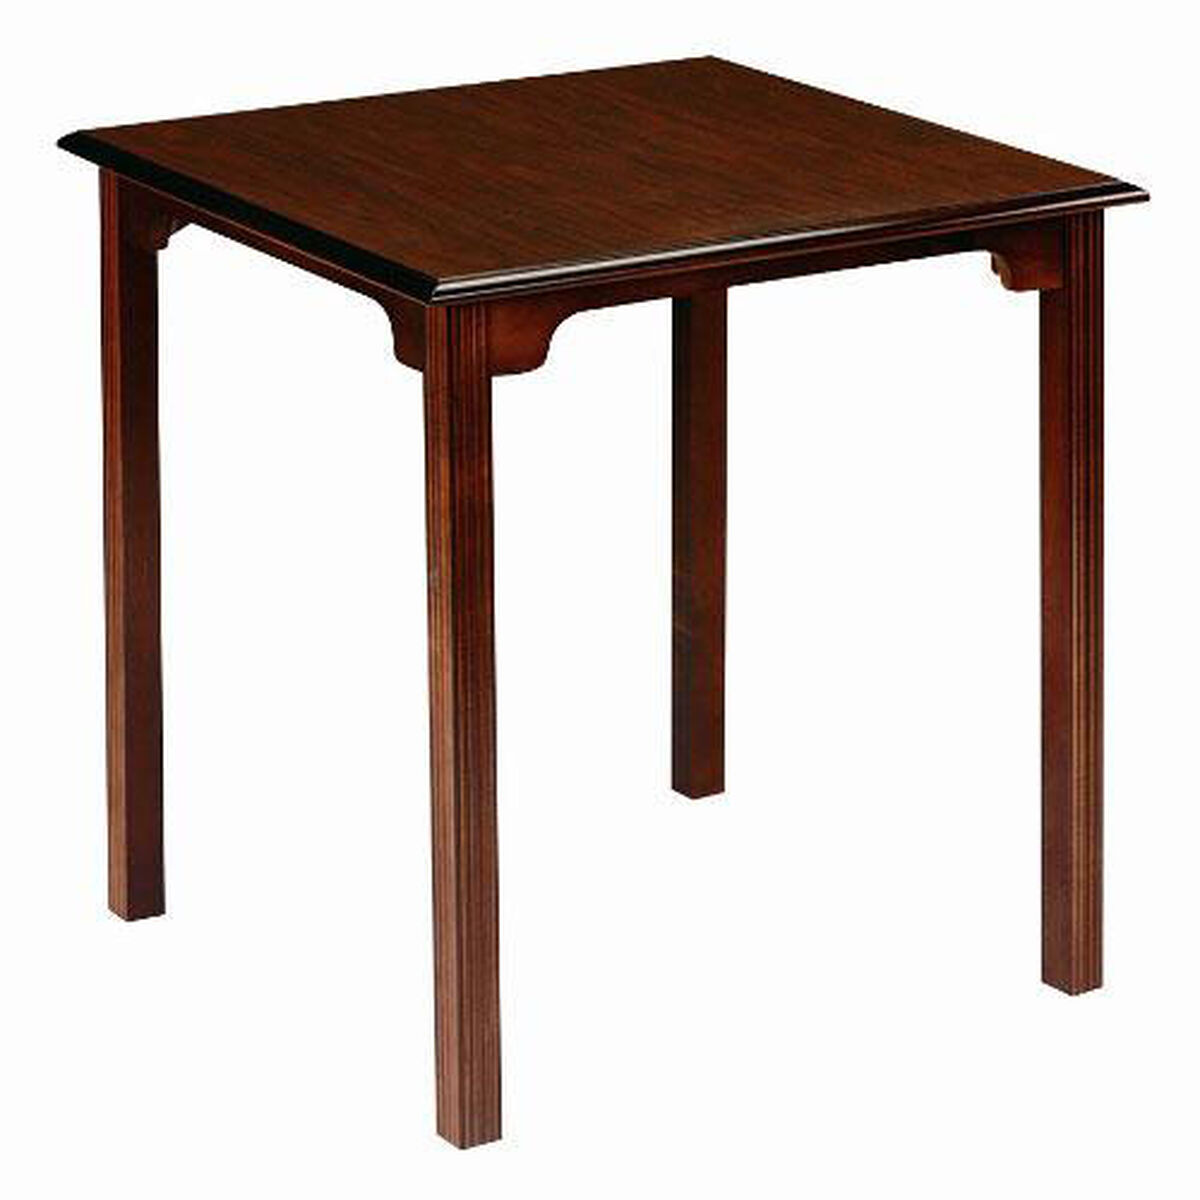 Chippendale Table Legs Image Collections Bar Height